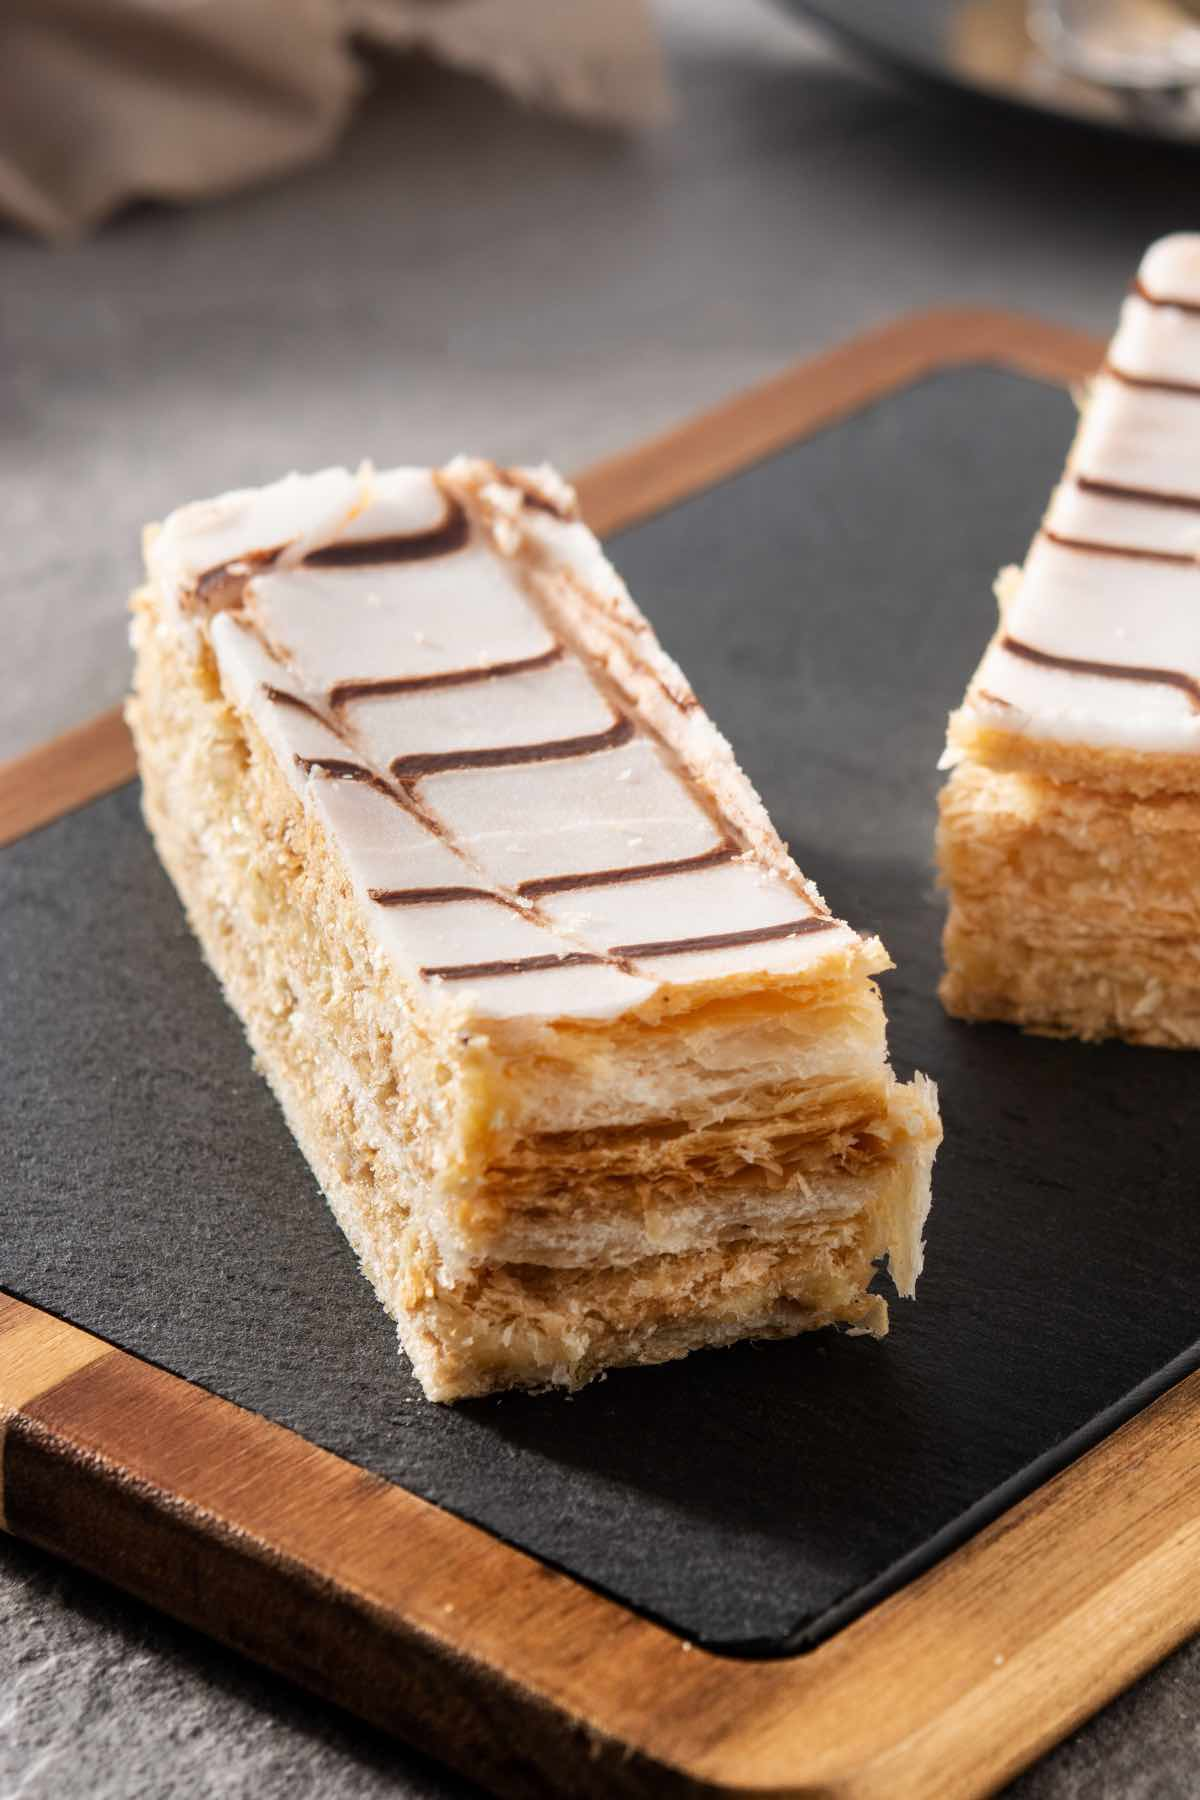 Napoleon Dessert is a classic blend of flaky pastry and creamy filling with a rich yet light taste and texture. Similar to Mile Feuille, it can be paired with tea or coffee for a great afternoon treat or an after-dinner dessert.